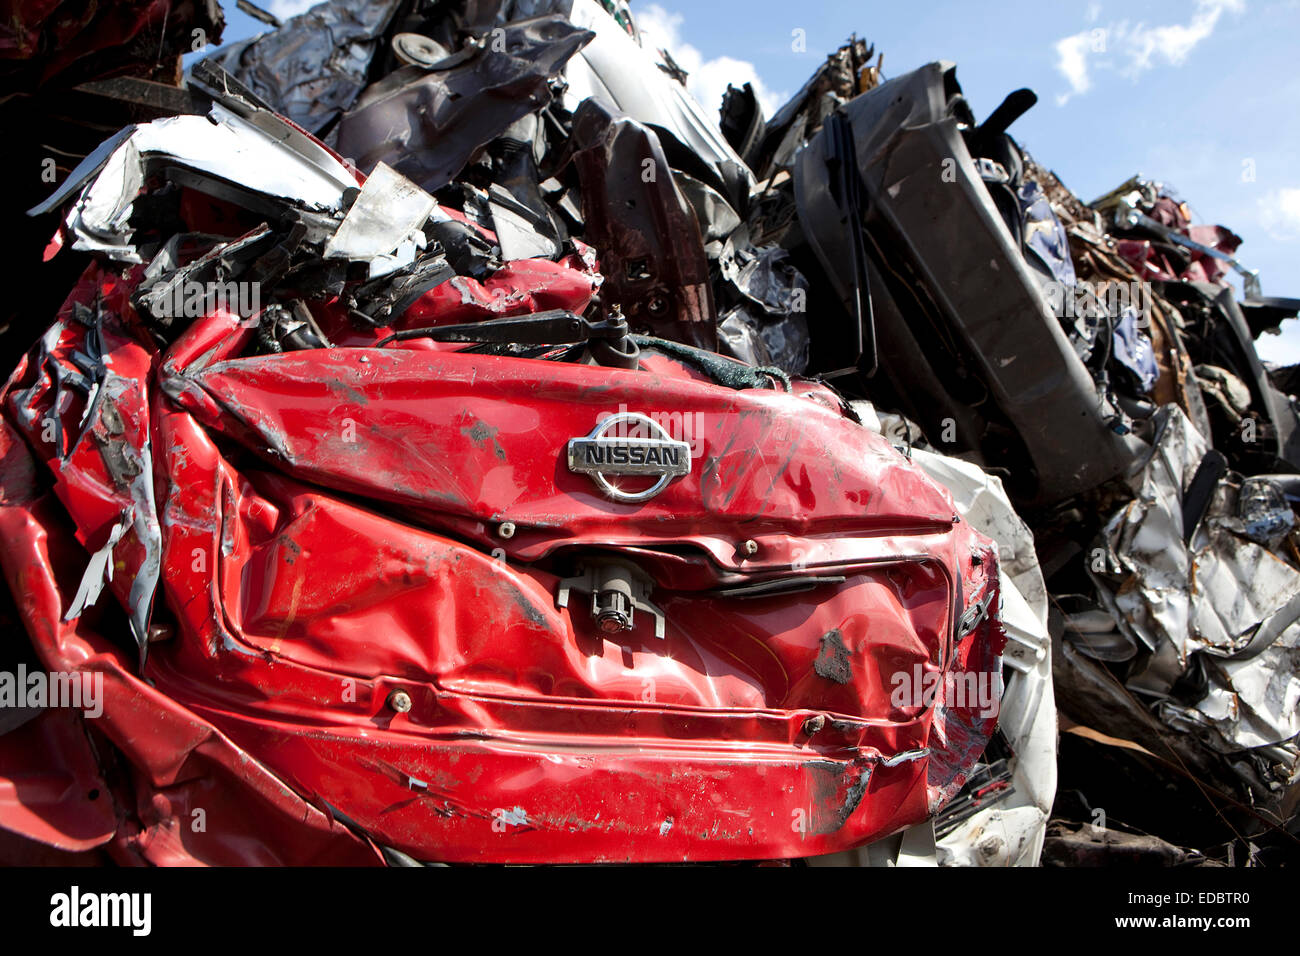 A Nissan car logo is visible amongst a pile of crushed cars. - Stock Image